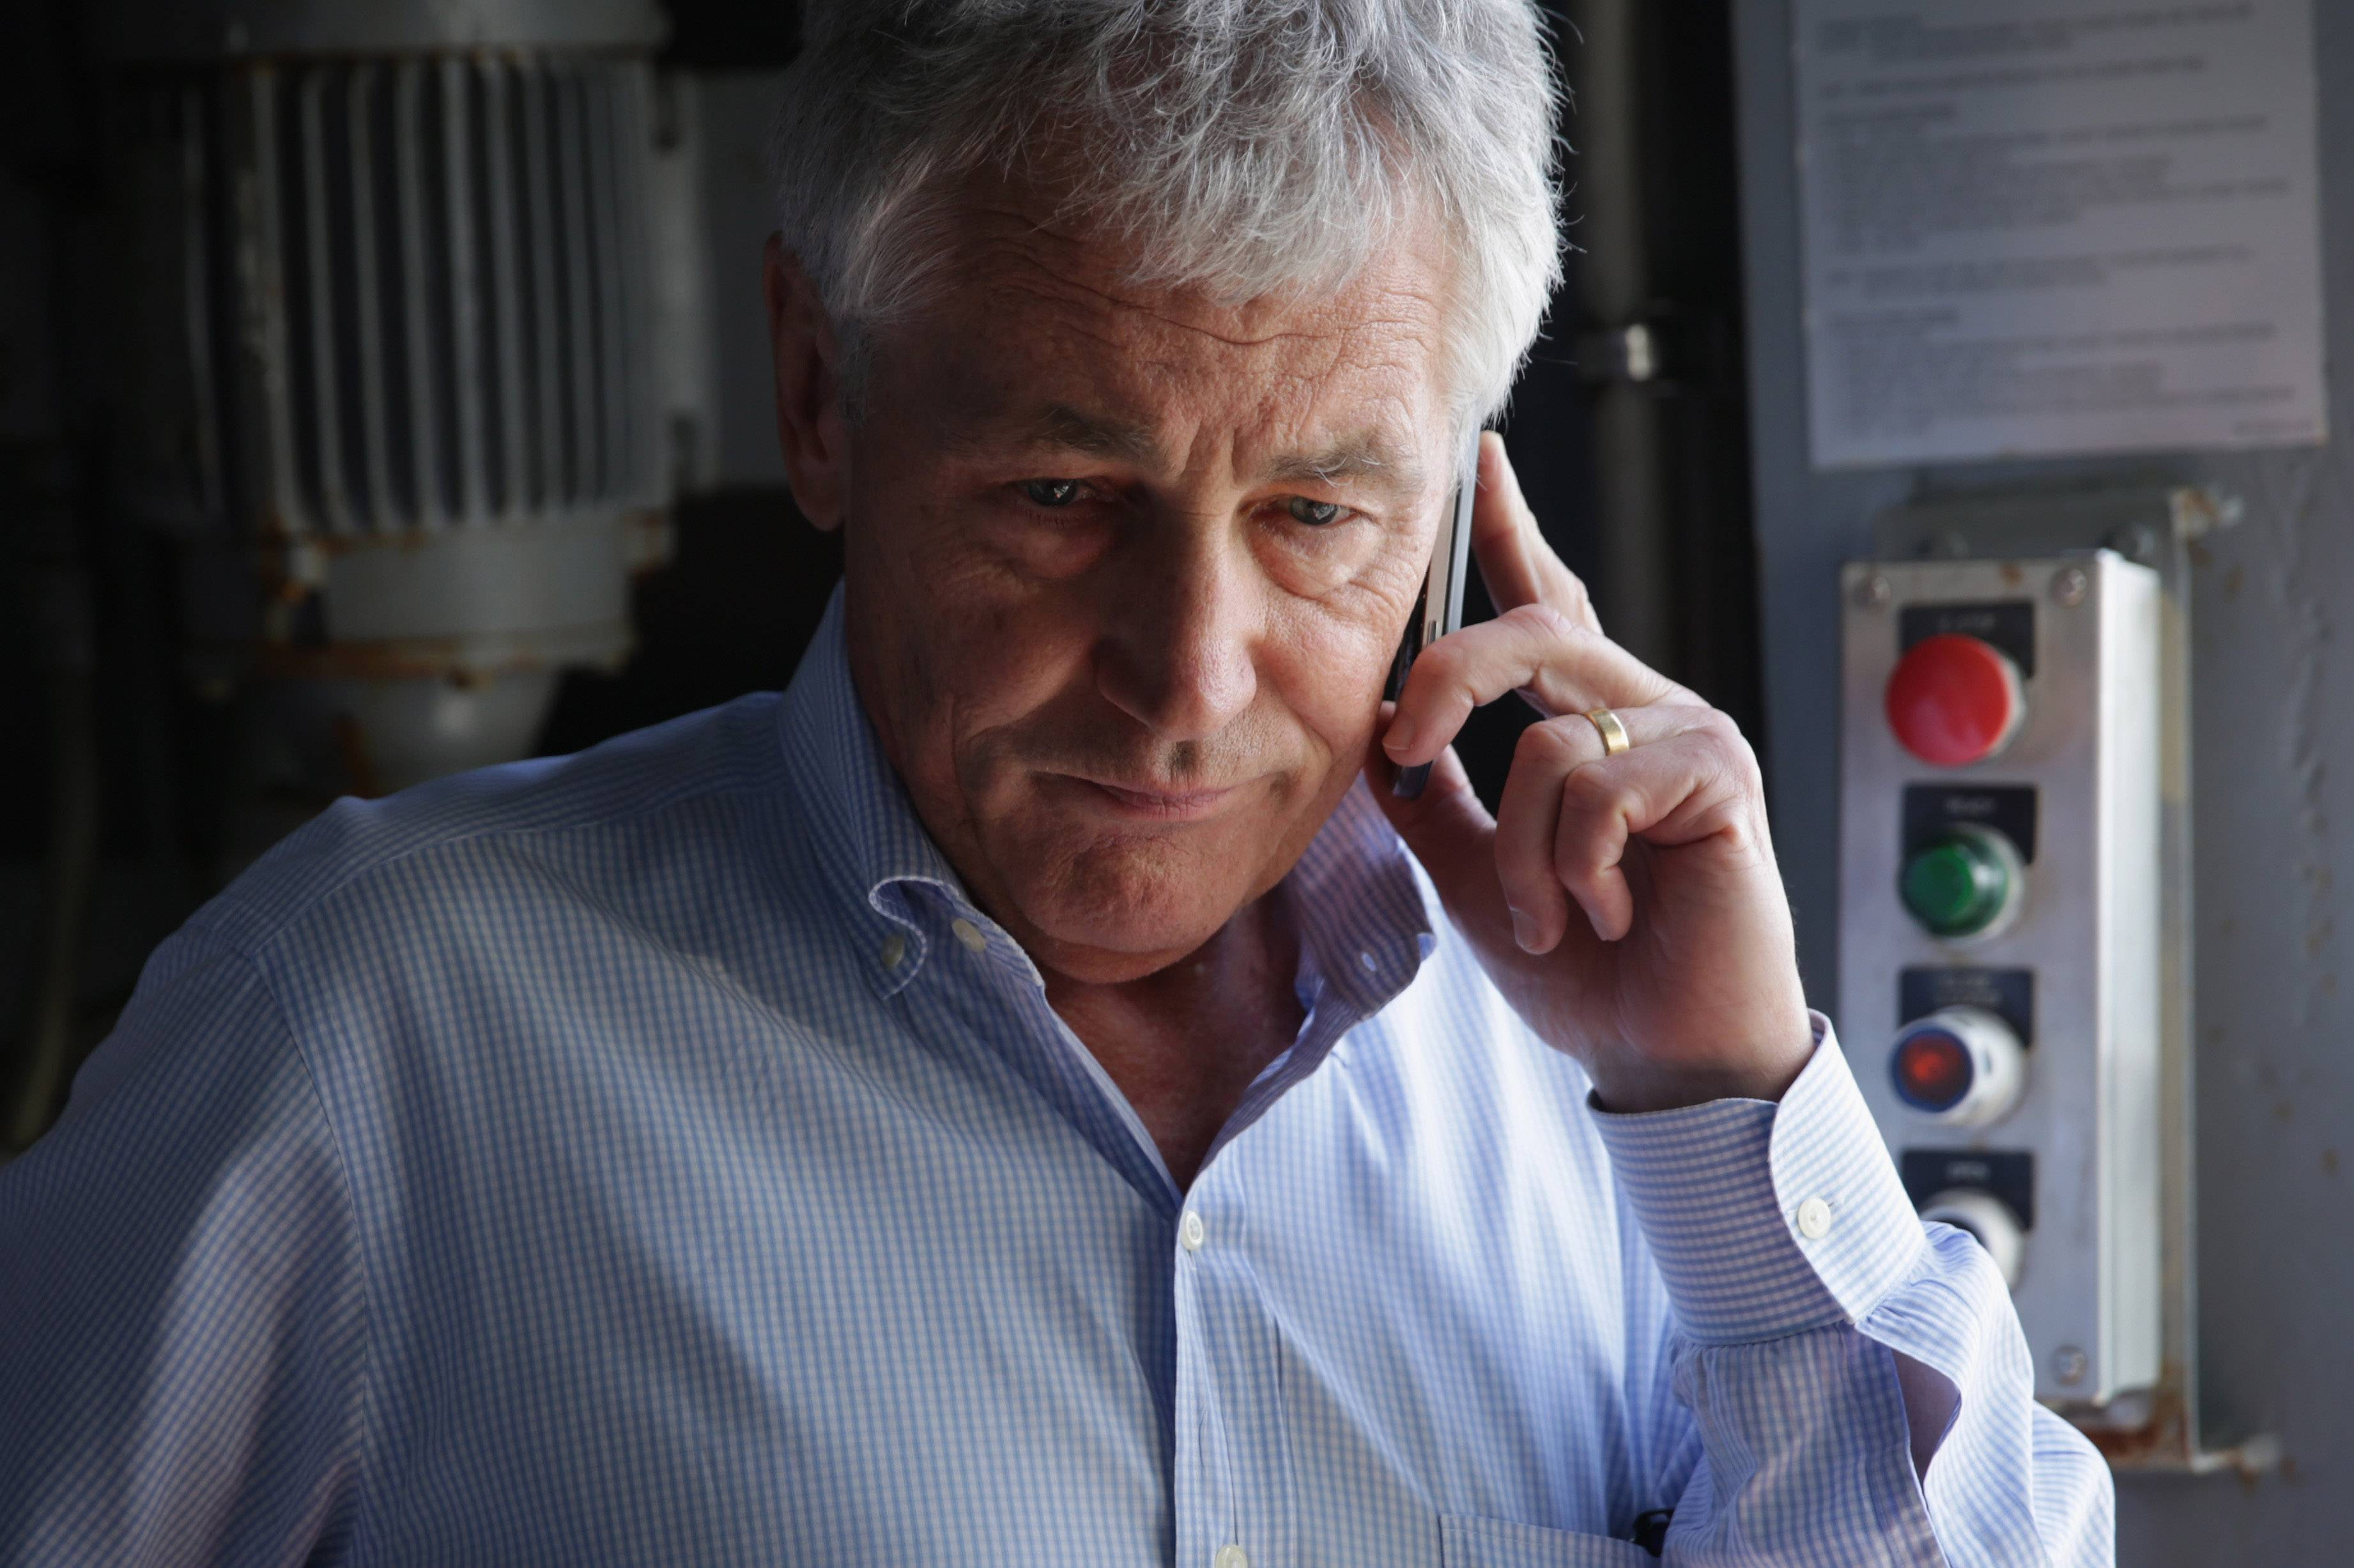 U.S. Secretary of Defense Chuck Hagel receives an update on the phone on the shooting at Fort Hood in Texas, as he was on a tour of the USS Anchorage, an amphibious transport dock ship, with his counterparts from Southeast Asia on Wednesday at Joint Base Pearl Harbor-Hickam in Honolulu, Hawaii.